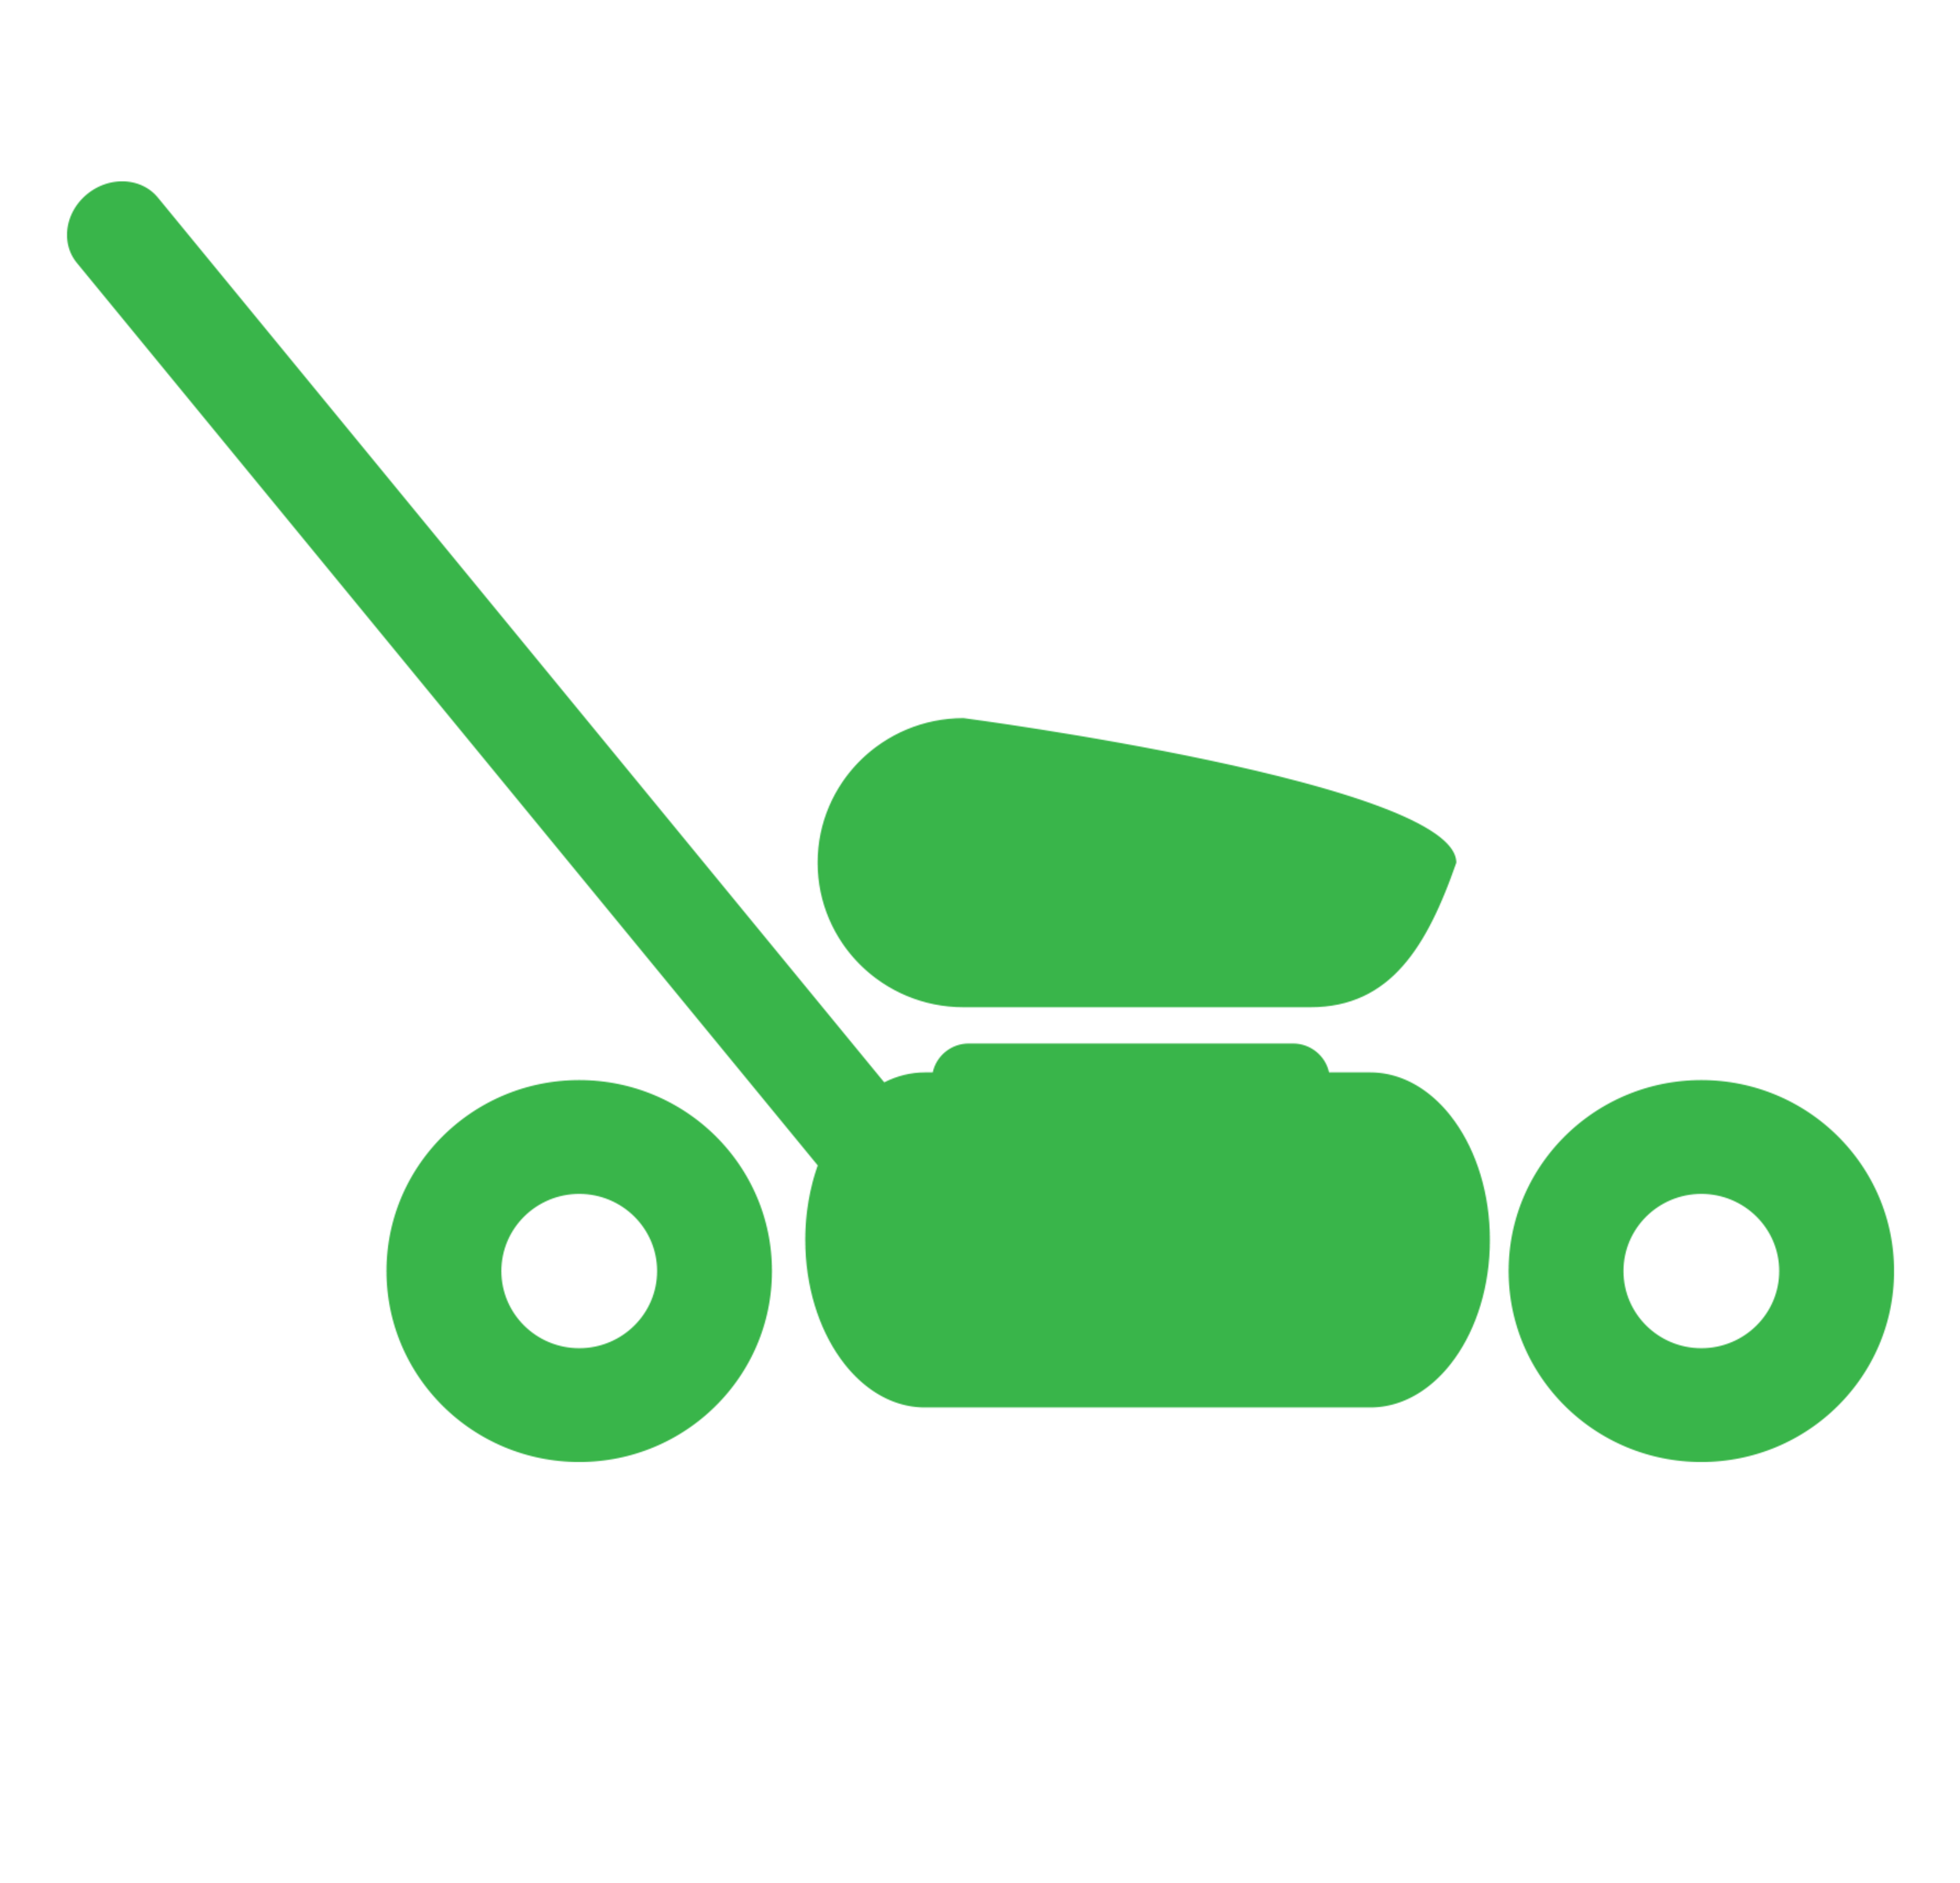 Lawn Mower Clip Art Best \x3cb\x3elawn mower clipart\x3c/b\x3e #15189 ...